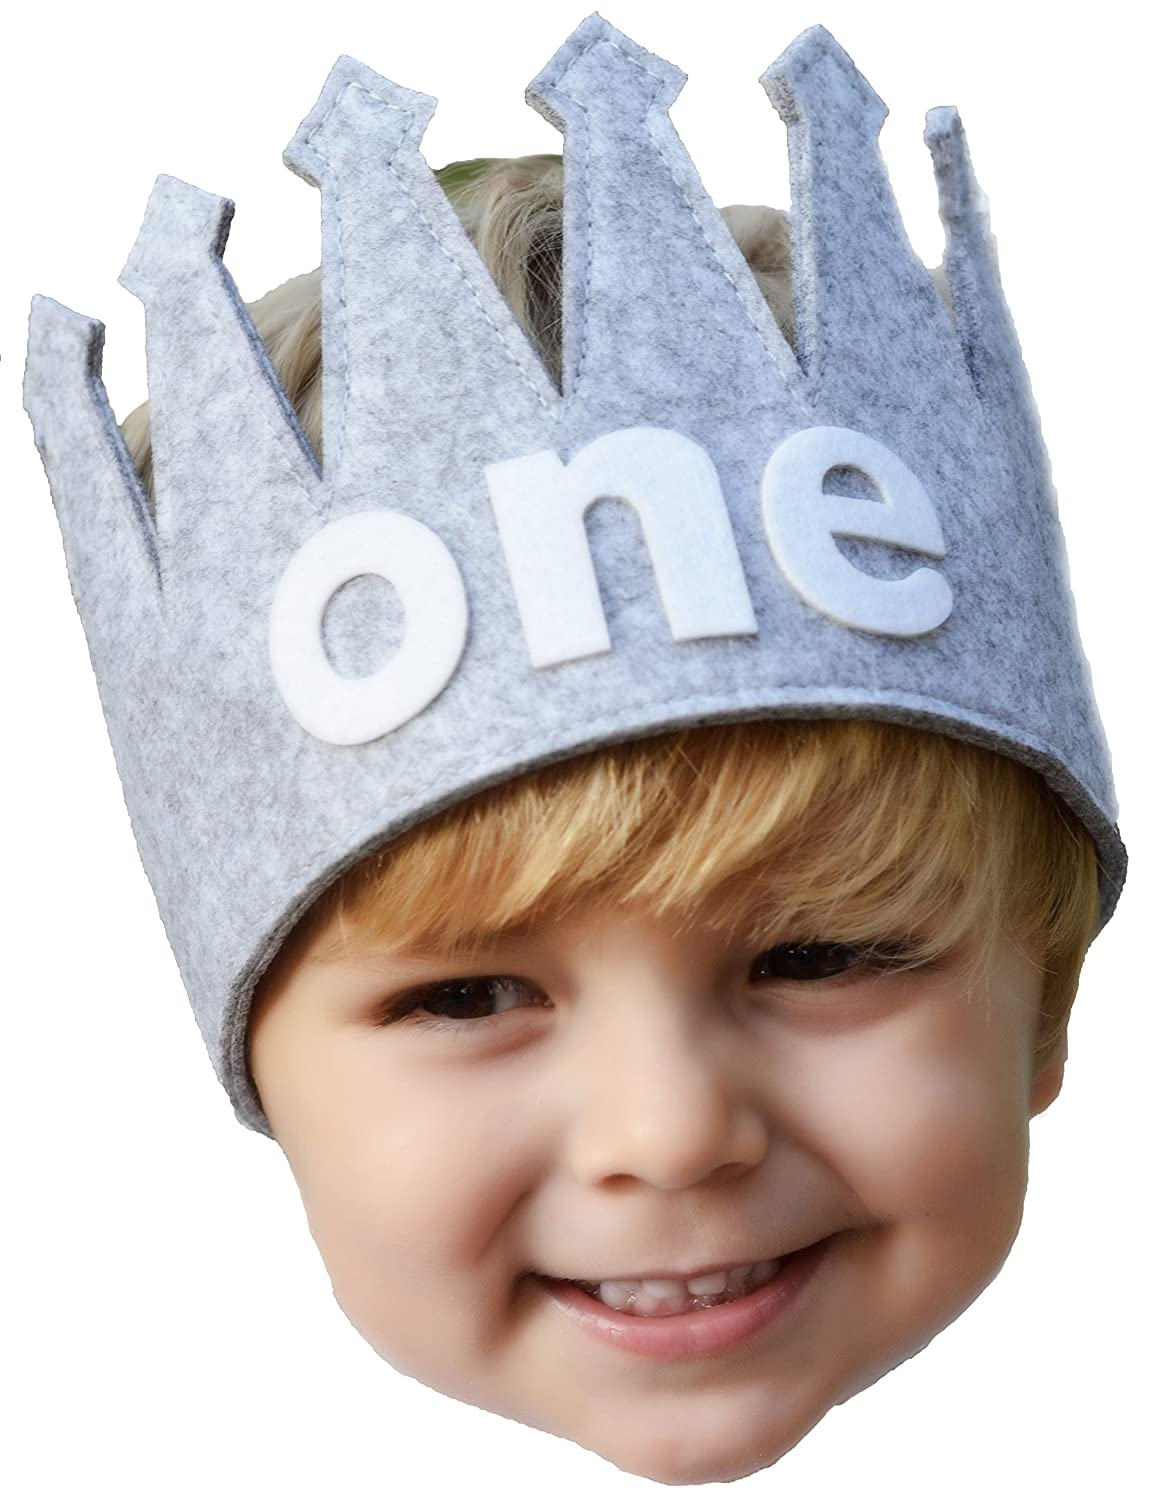 Classy Baby Boy Firstone Birthday Gray and White Party Crown One-OS-GrayCrown